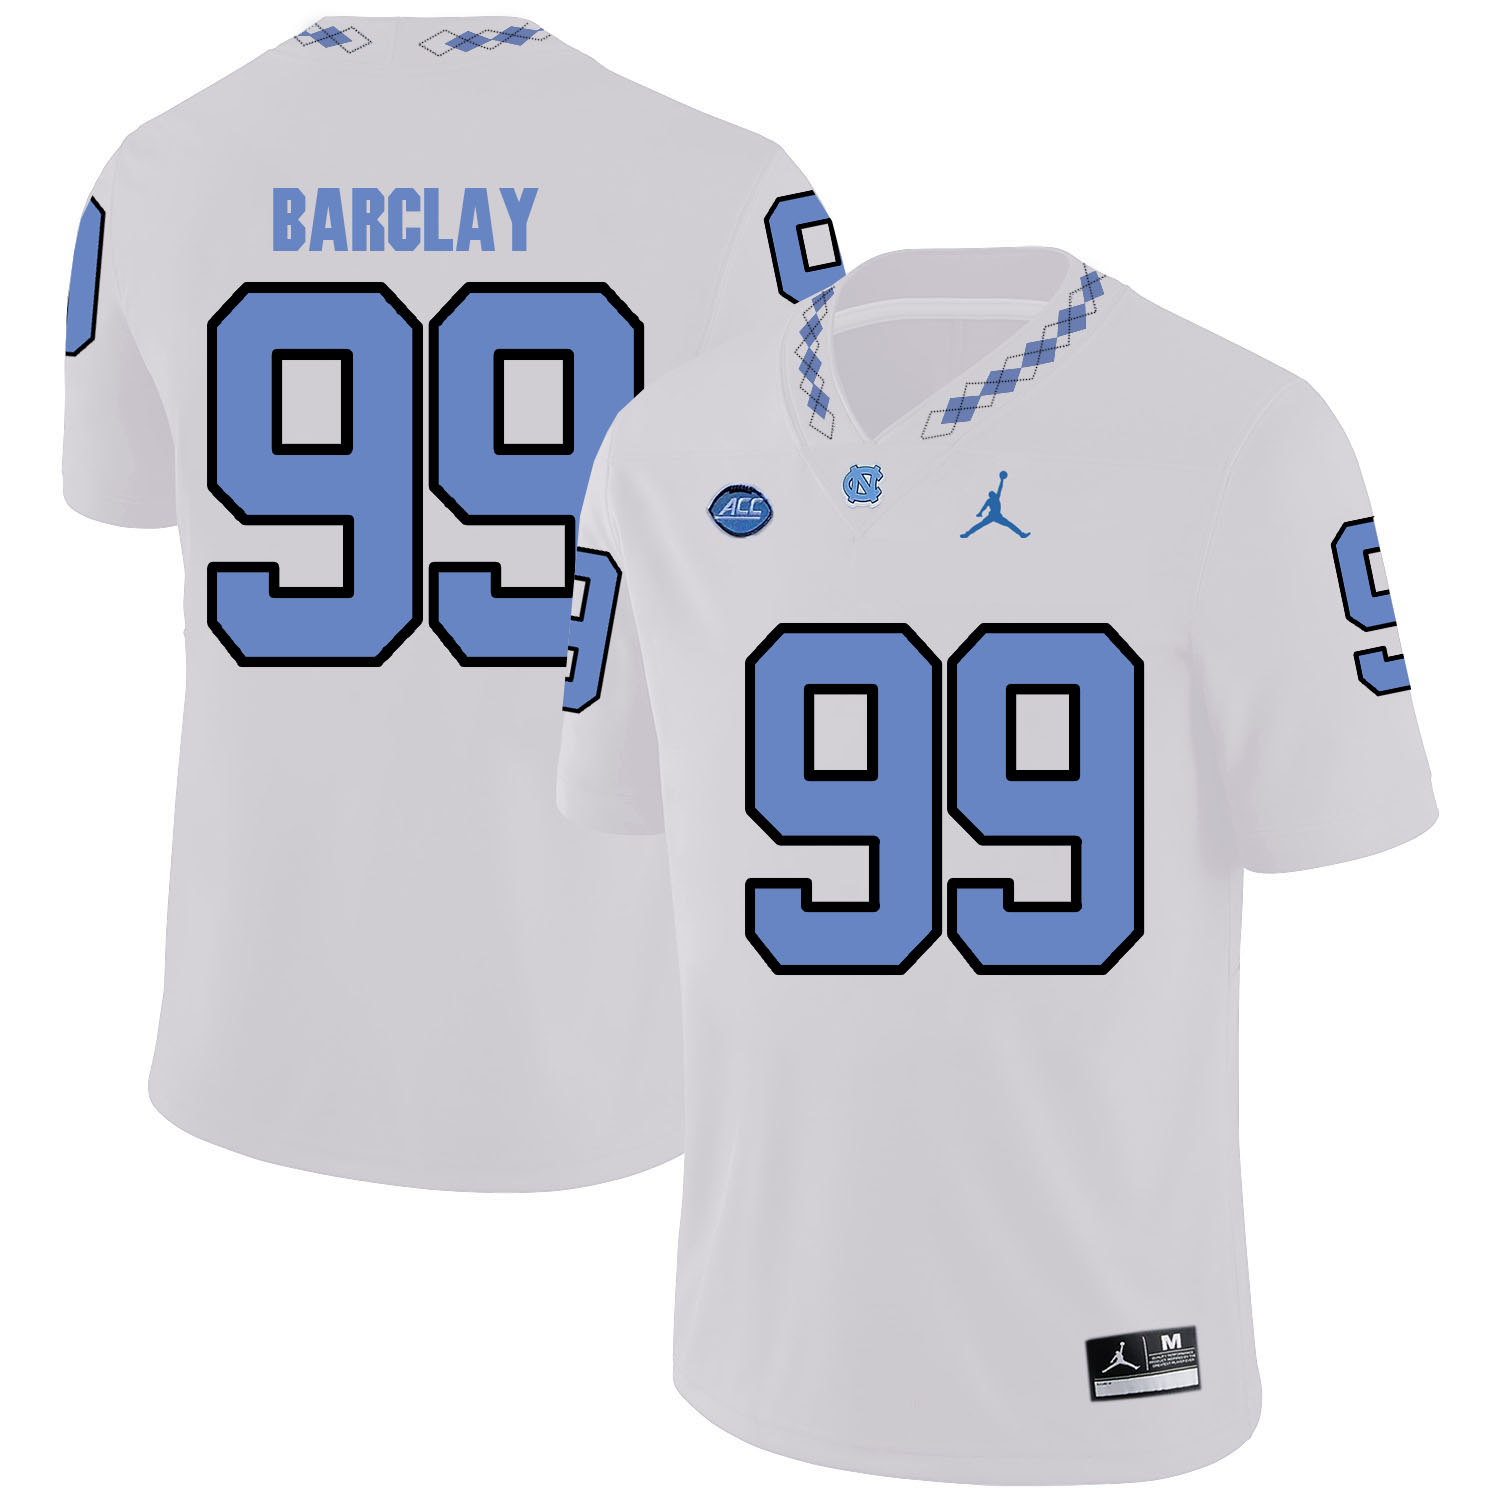 North Carolina Tar Heels 99 George Barclay White College Football Jersey